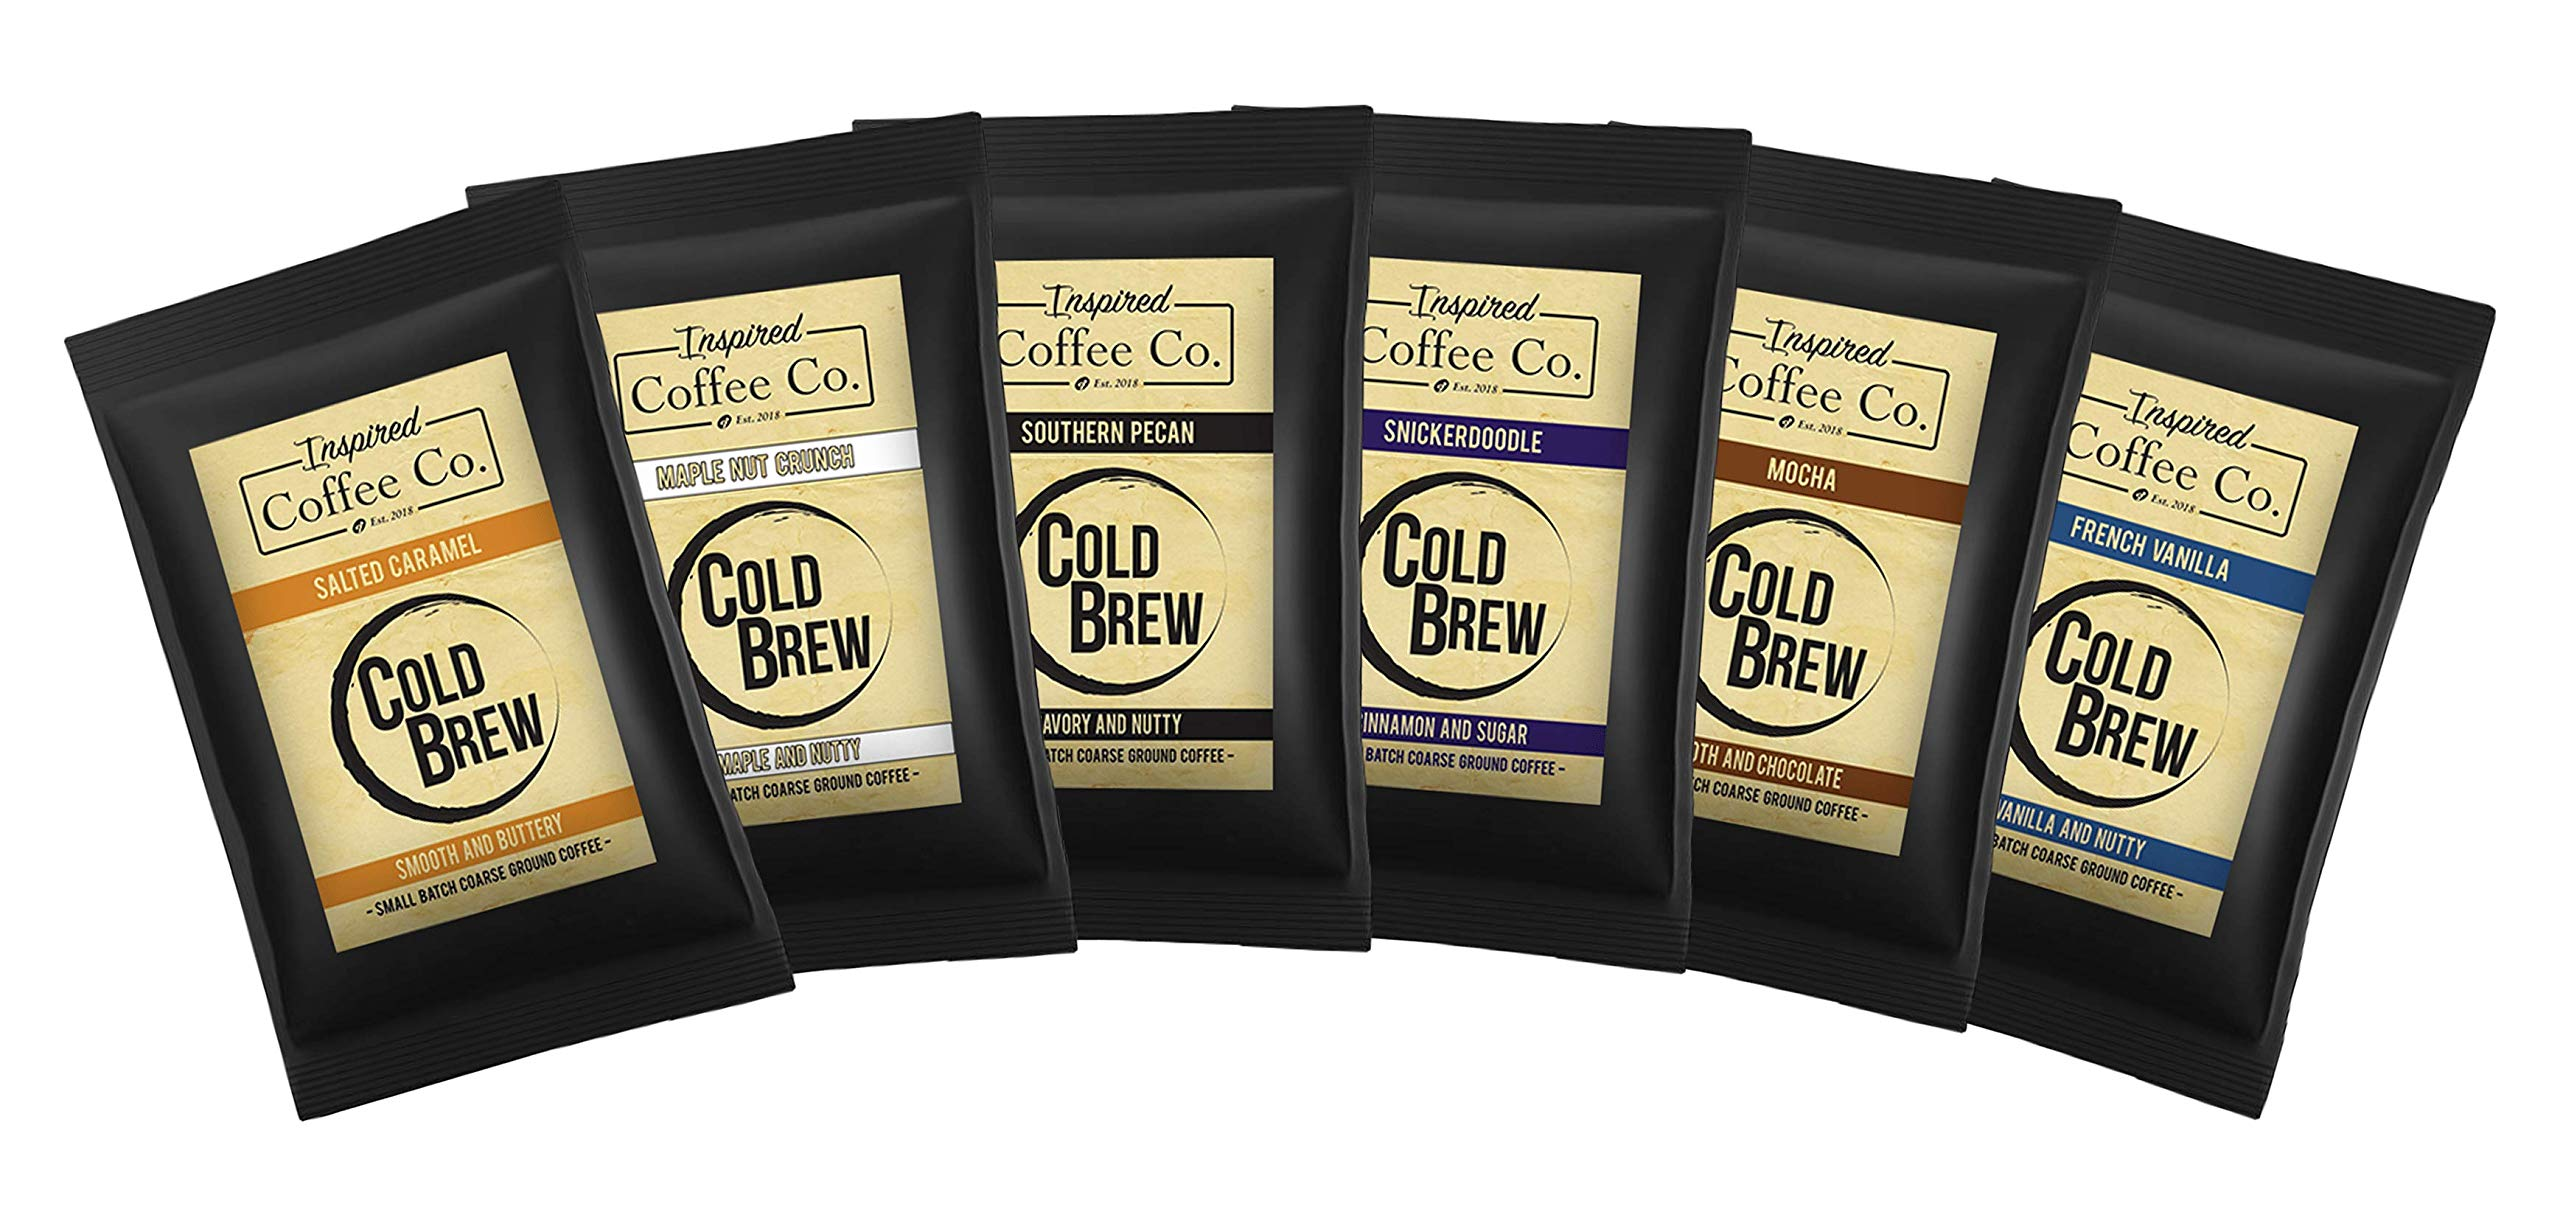 Savory Sampler Pack - Flavored Cold Brew Coffee - Inspired Coffee Co. - Coarse Ground Coffee - Six large 4 oz. Sample Bags